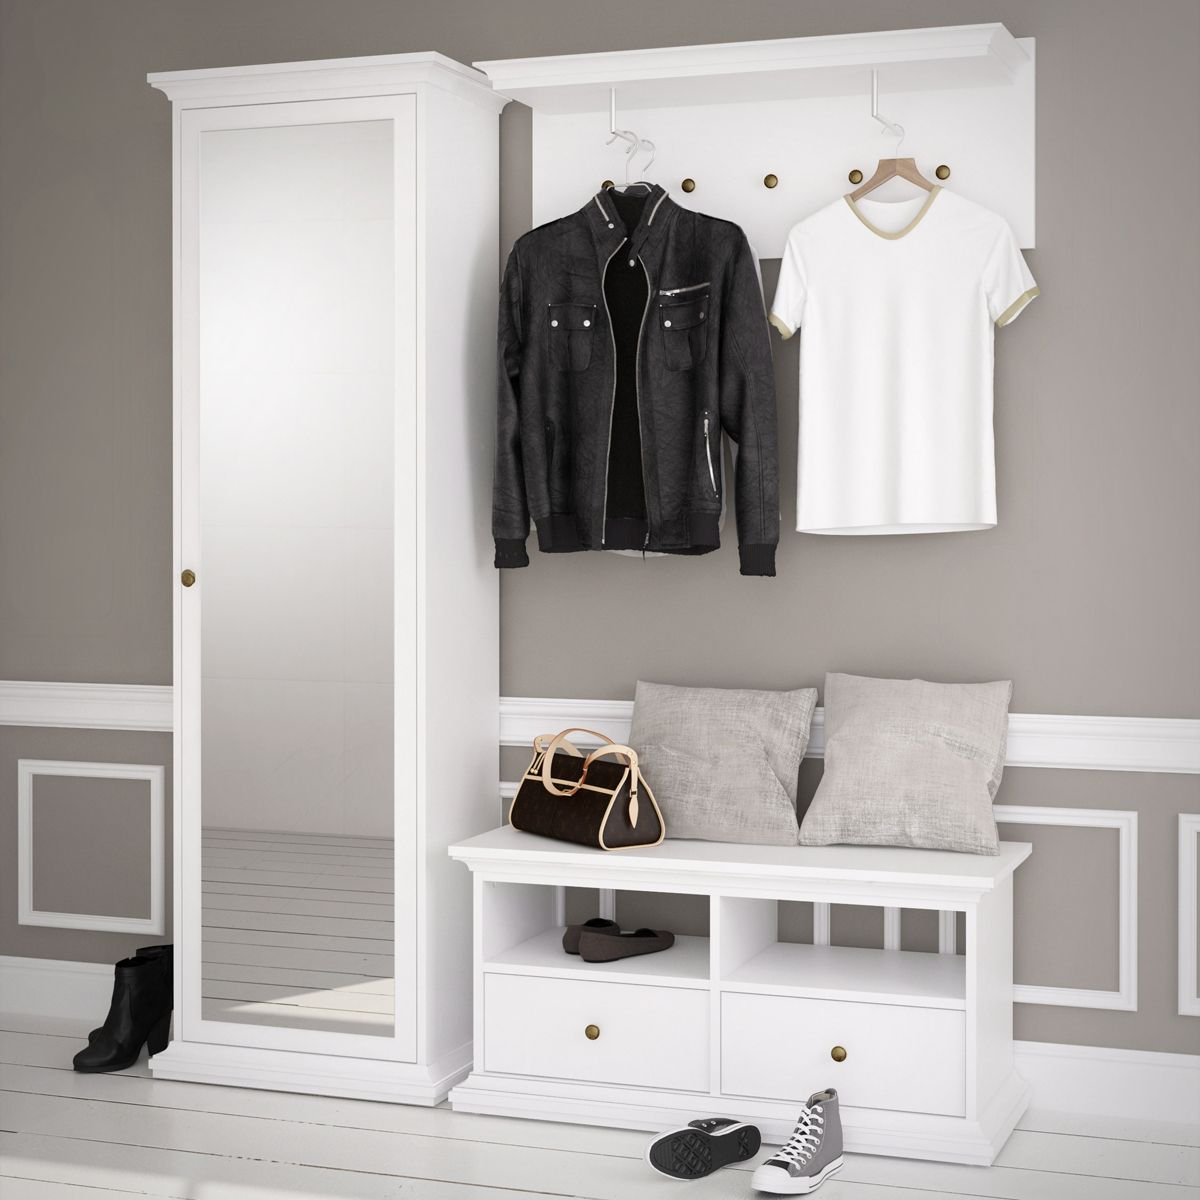 garderobe paris landhaus wei dielenschrank mit spiegel bank garderobenpaneel christine. Black Bedroom Furniture Sets. Home Design Ideas